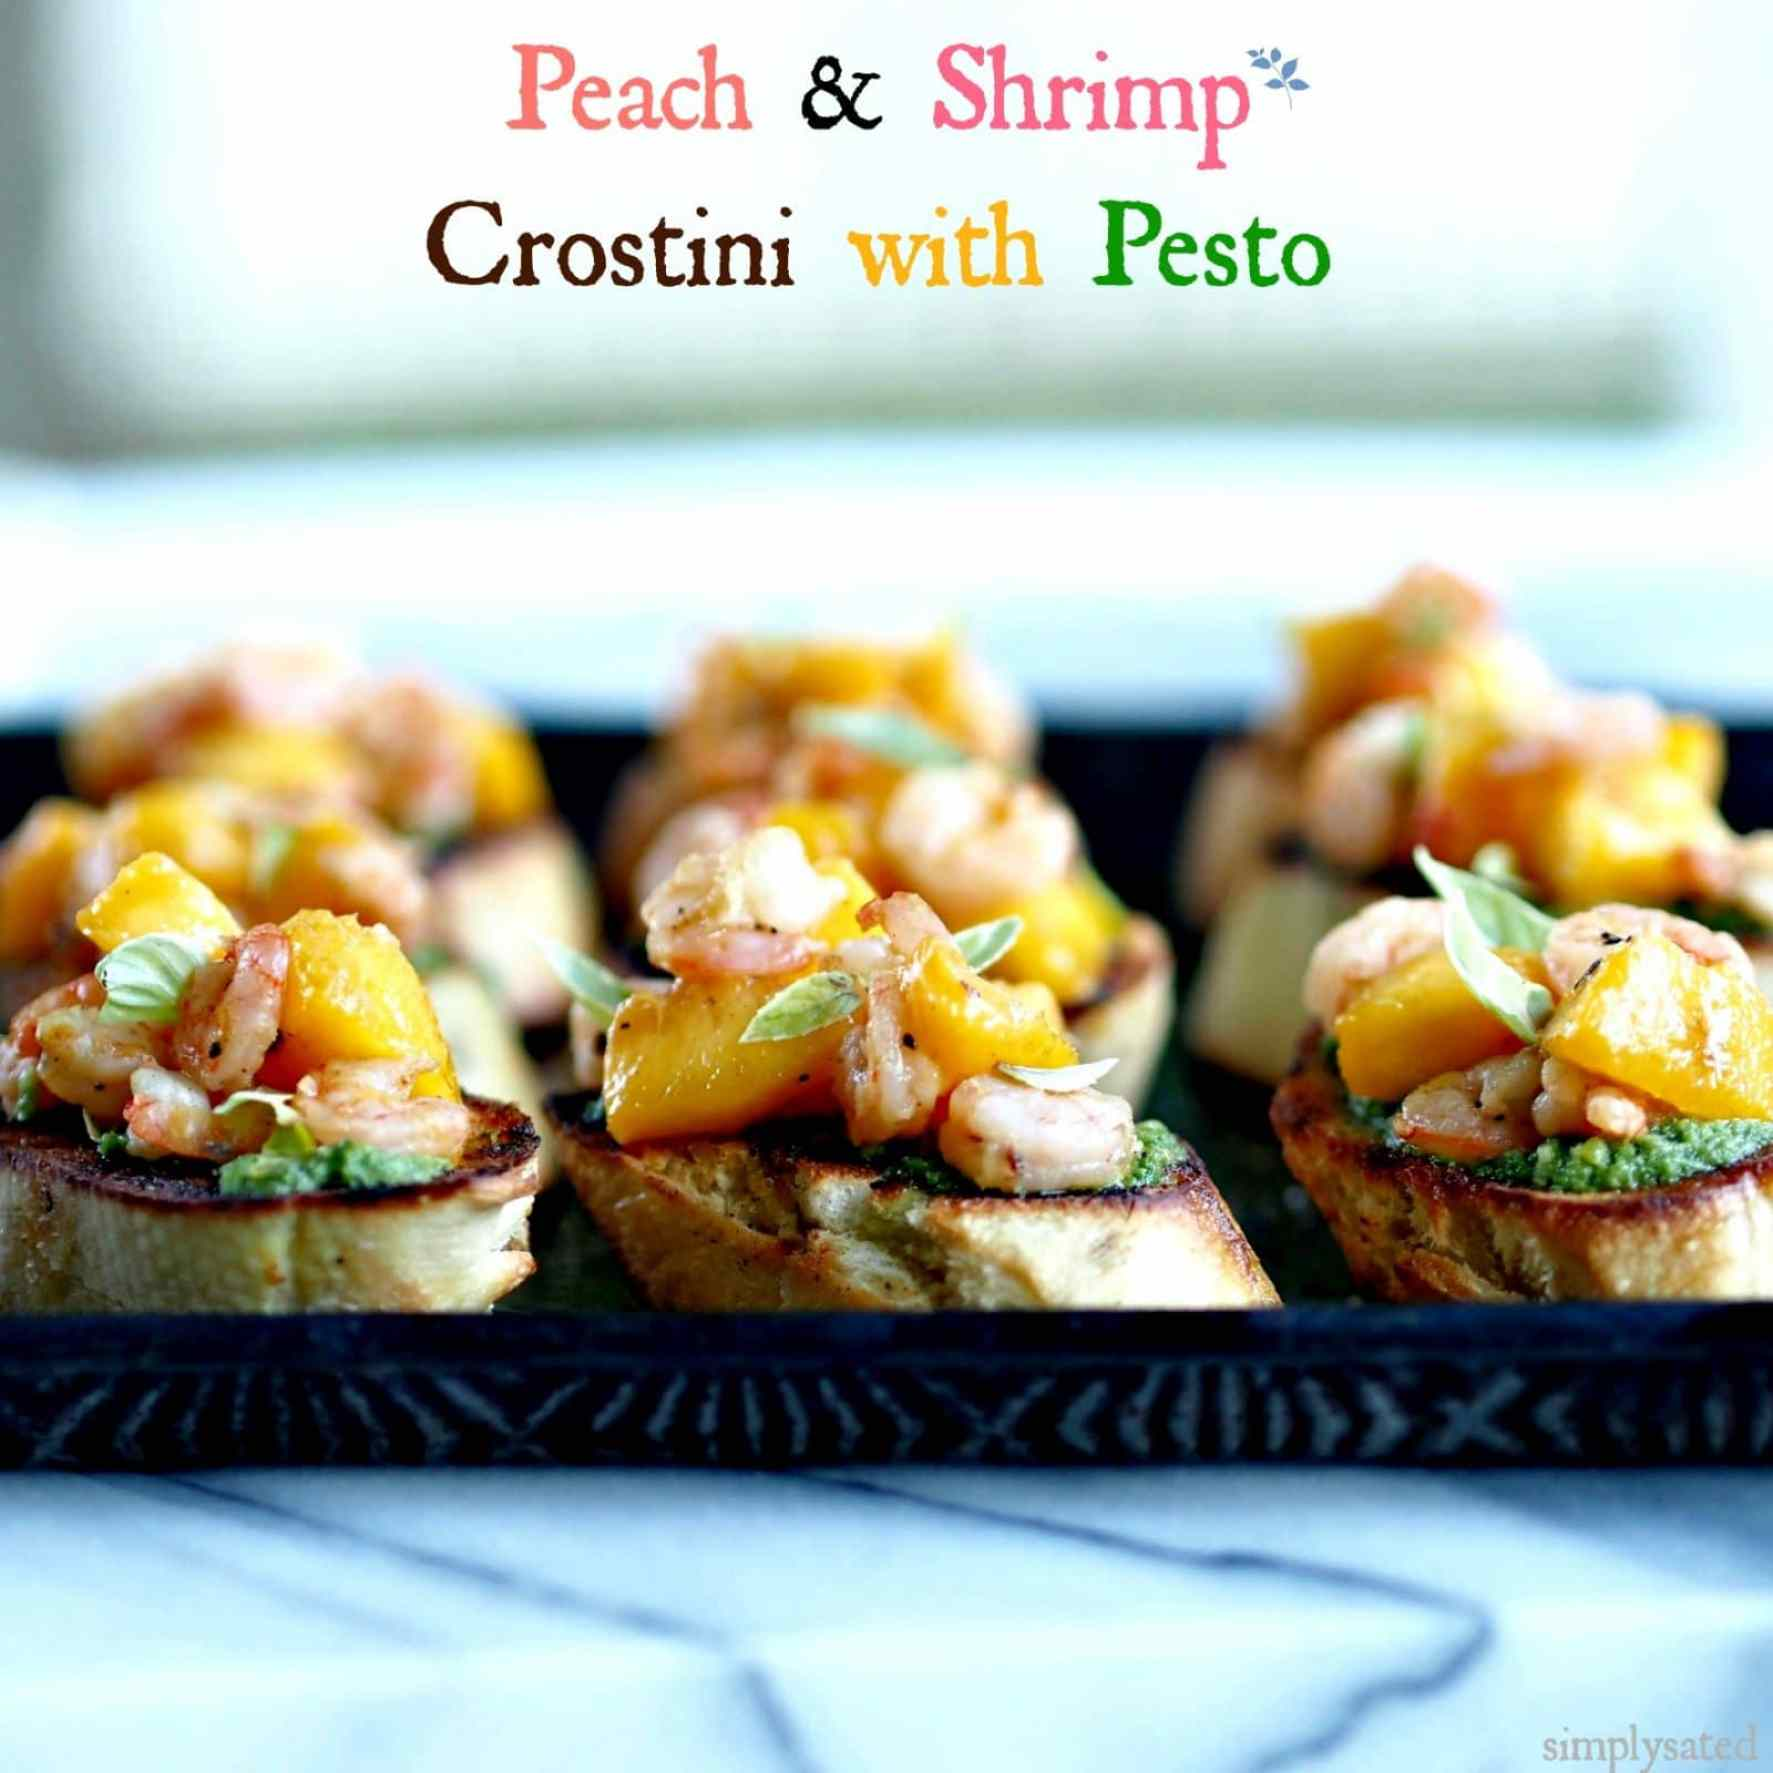 Peach & Shrimp Crostini with Pesto